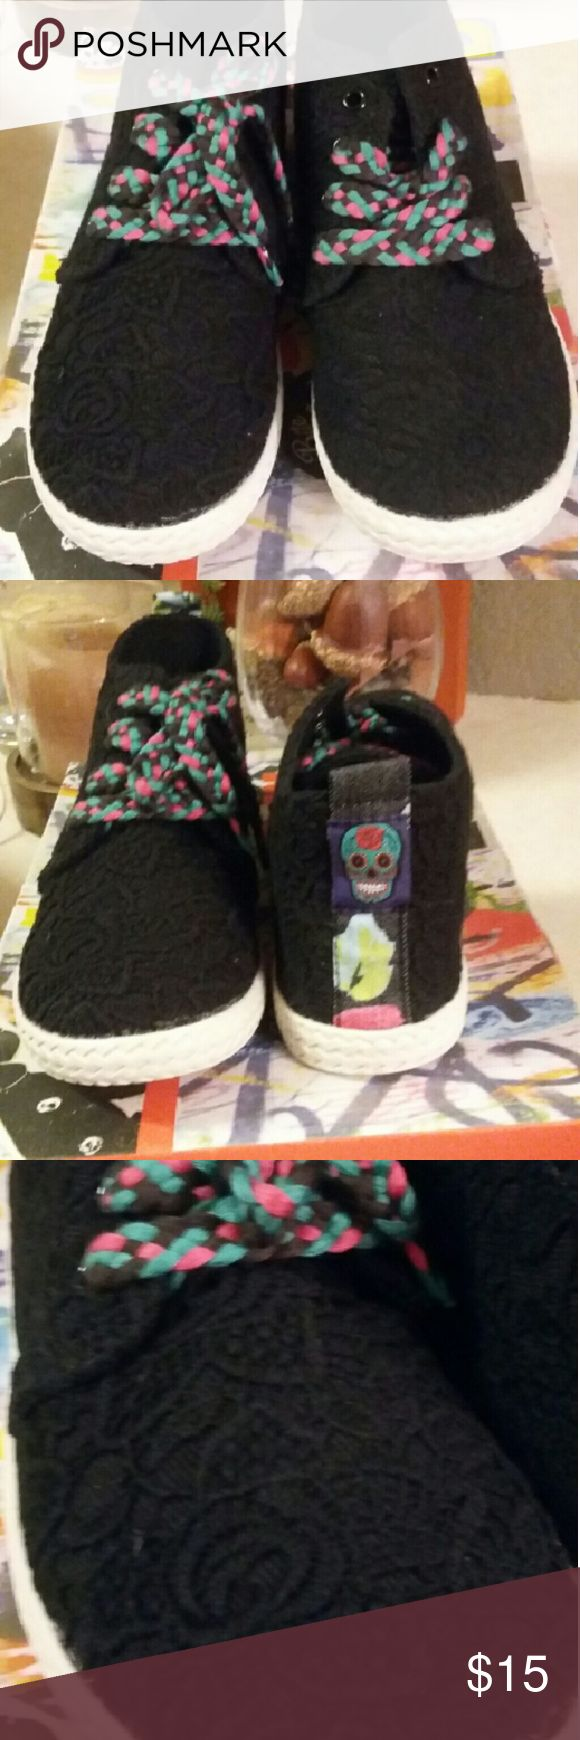 Tilly's girl shoes Tilly's blk girl shoes size 6, style name Sugar Momma, never worn Tilly's Shoes Athletic Shoes